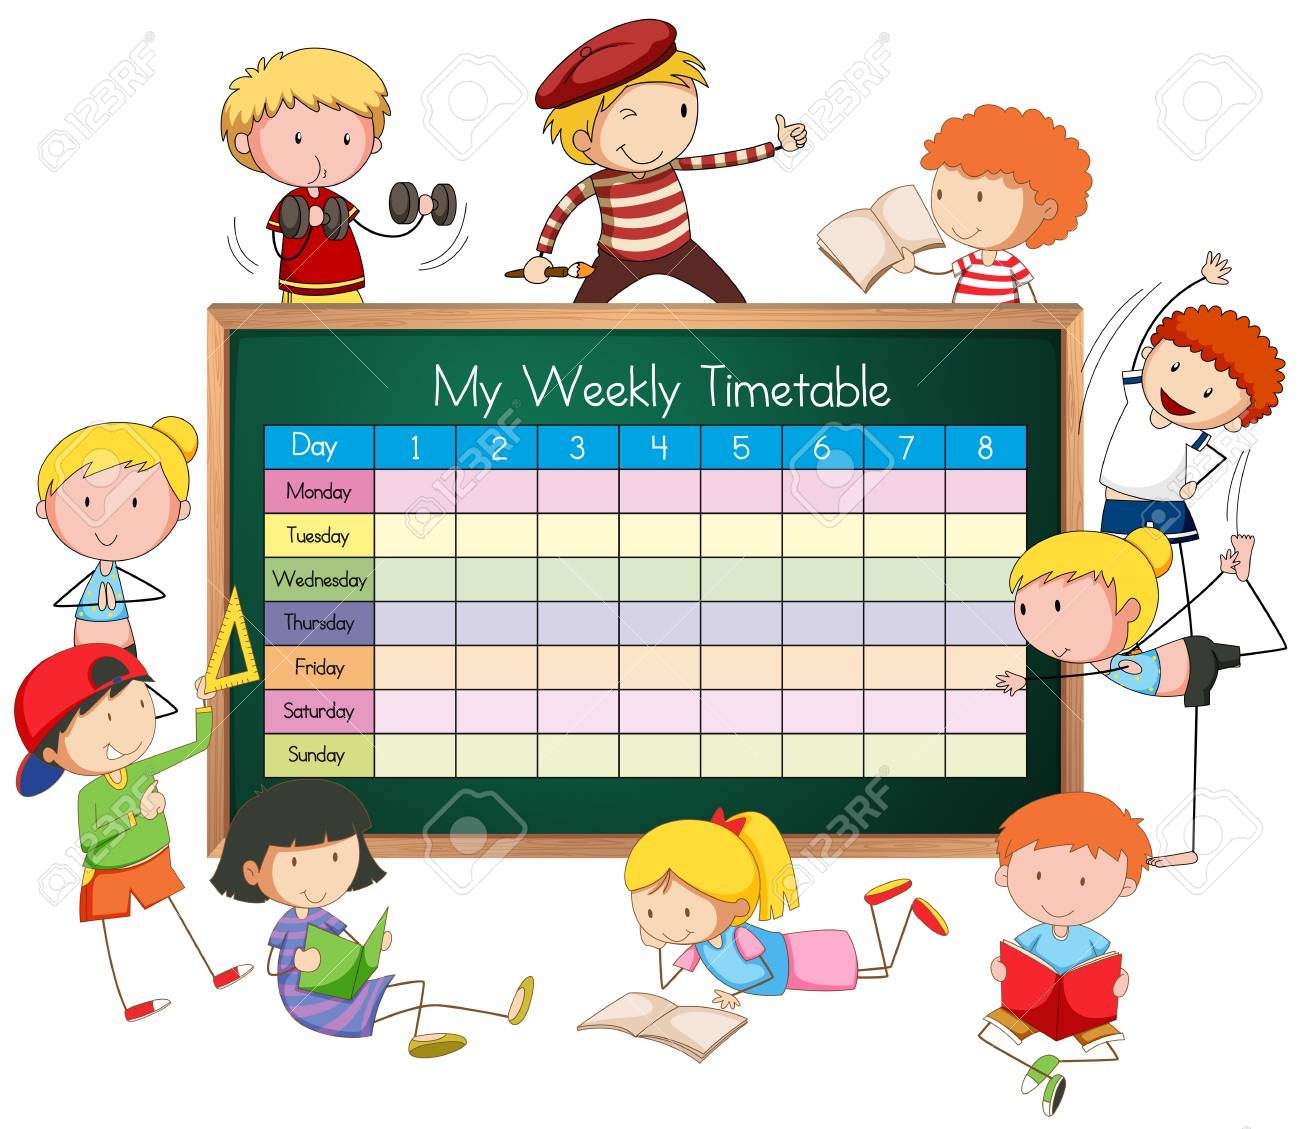 Weekly timetable with boys and girls illustration..